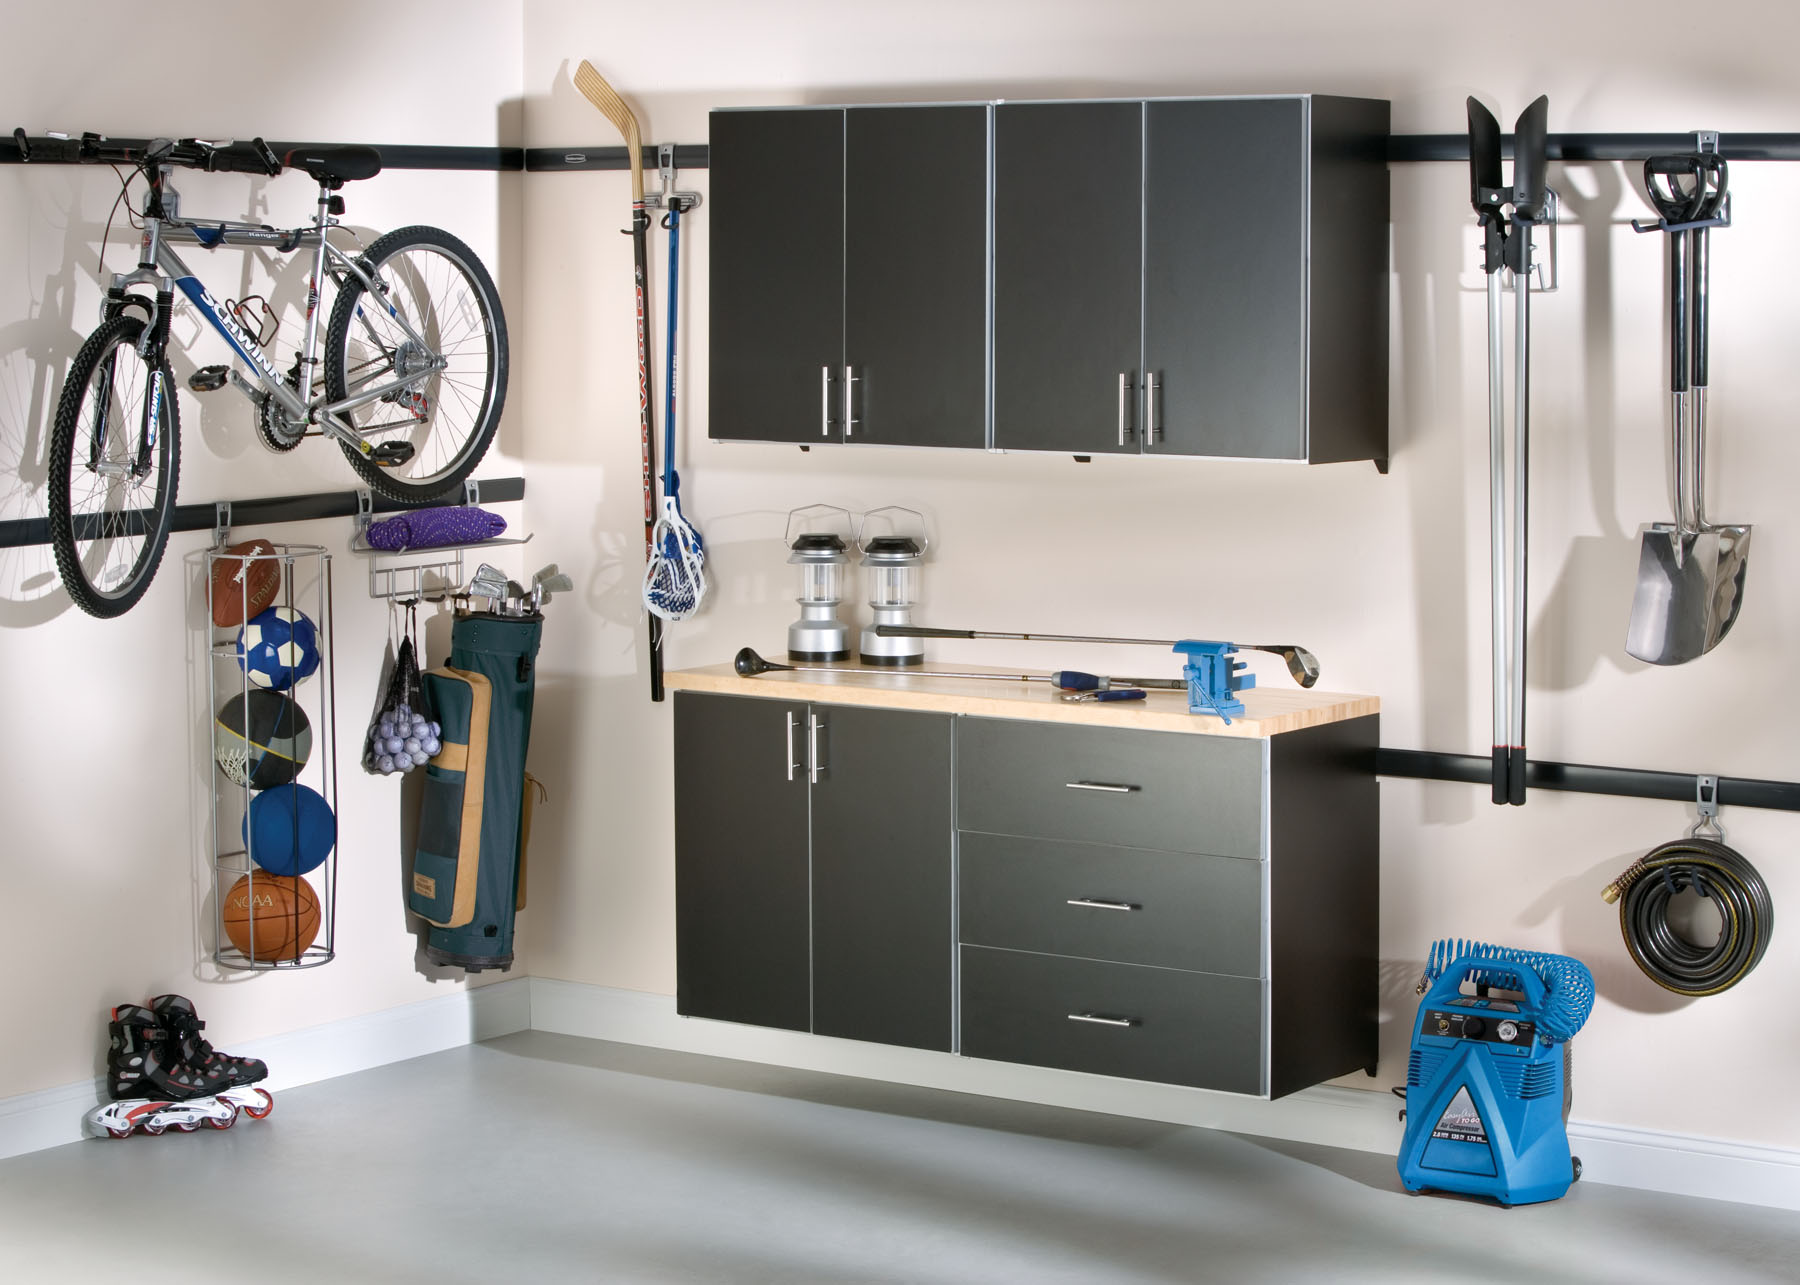 simple garage storage ideas for small space ideas image 10 of 10 - Storage Design Ideas